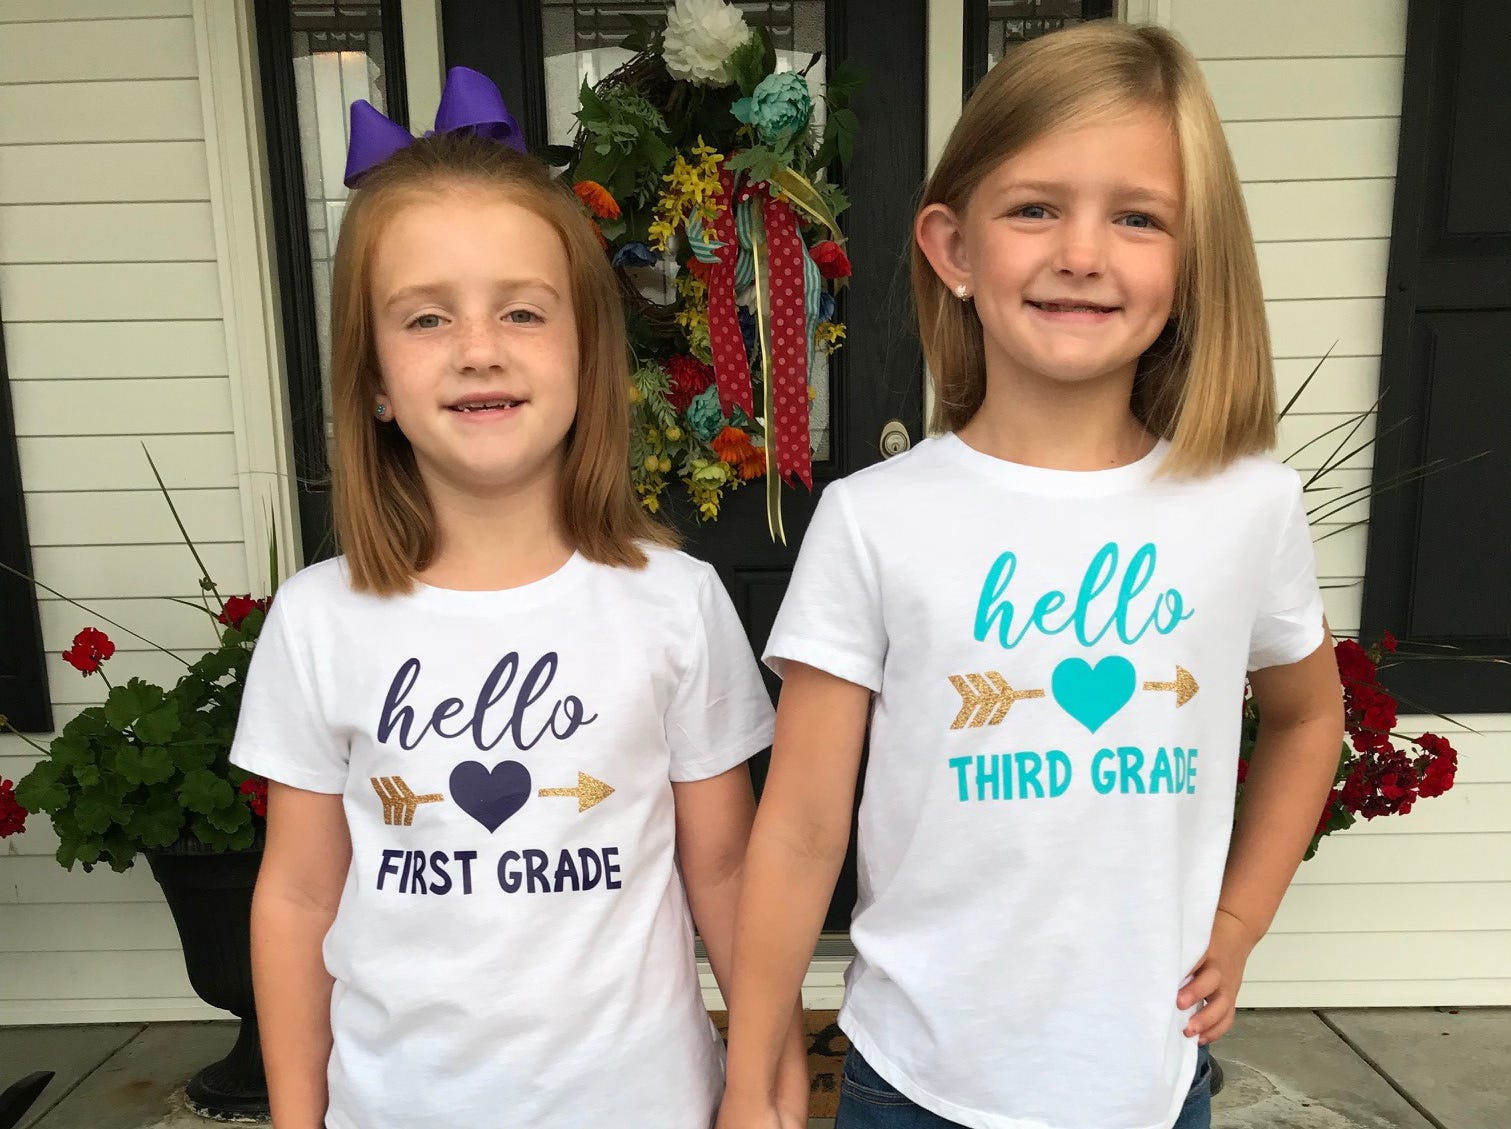 Avery's first day of 1st grade and Addison's first day of 3rd grade at Niagara Elementary